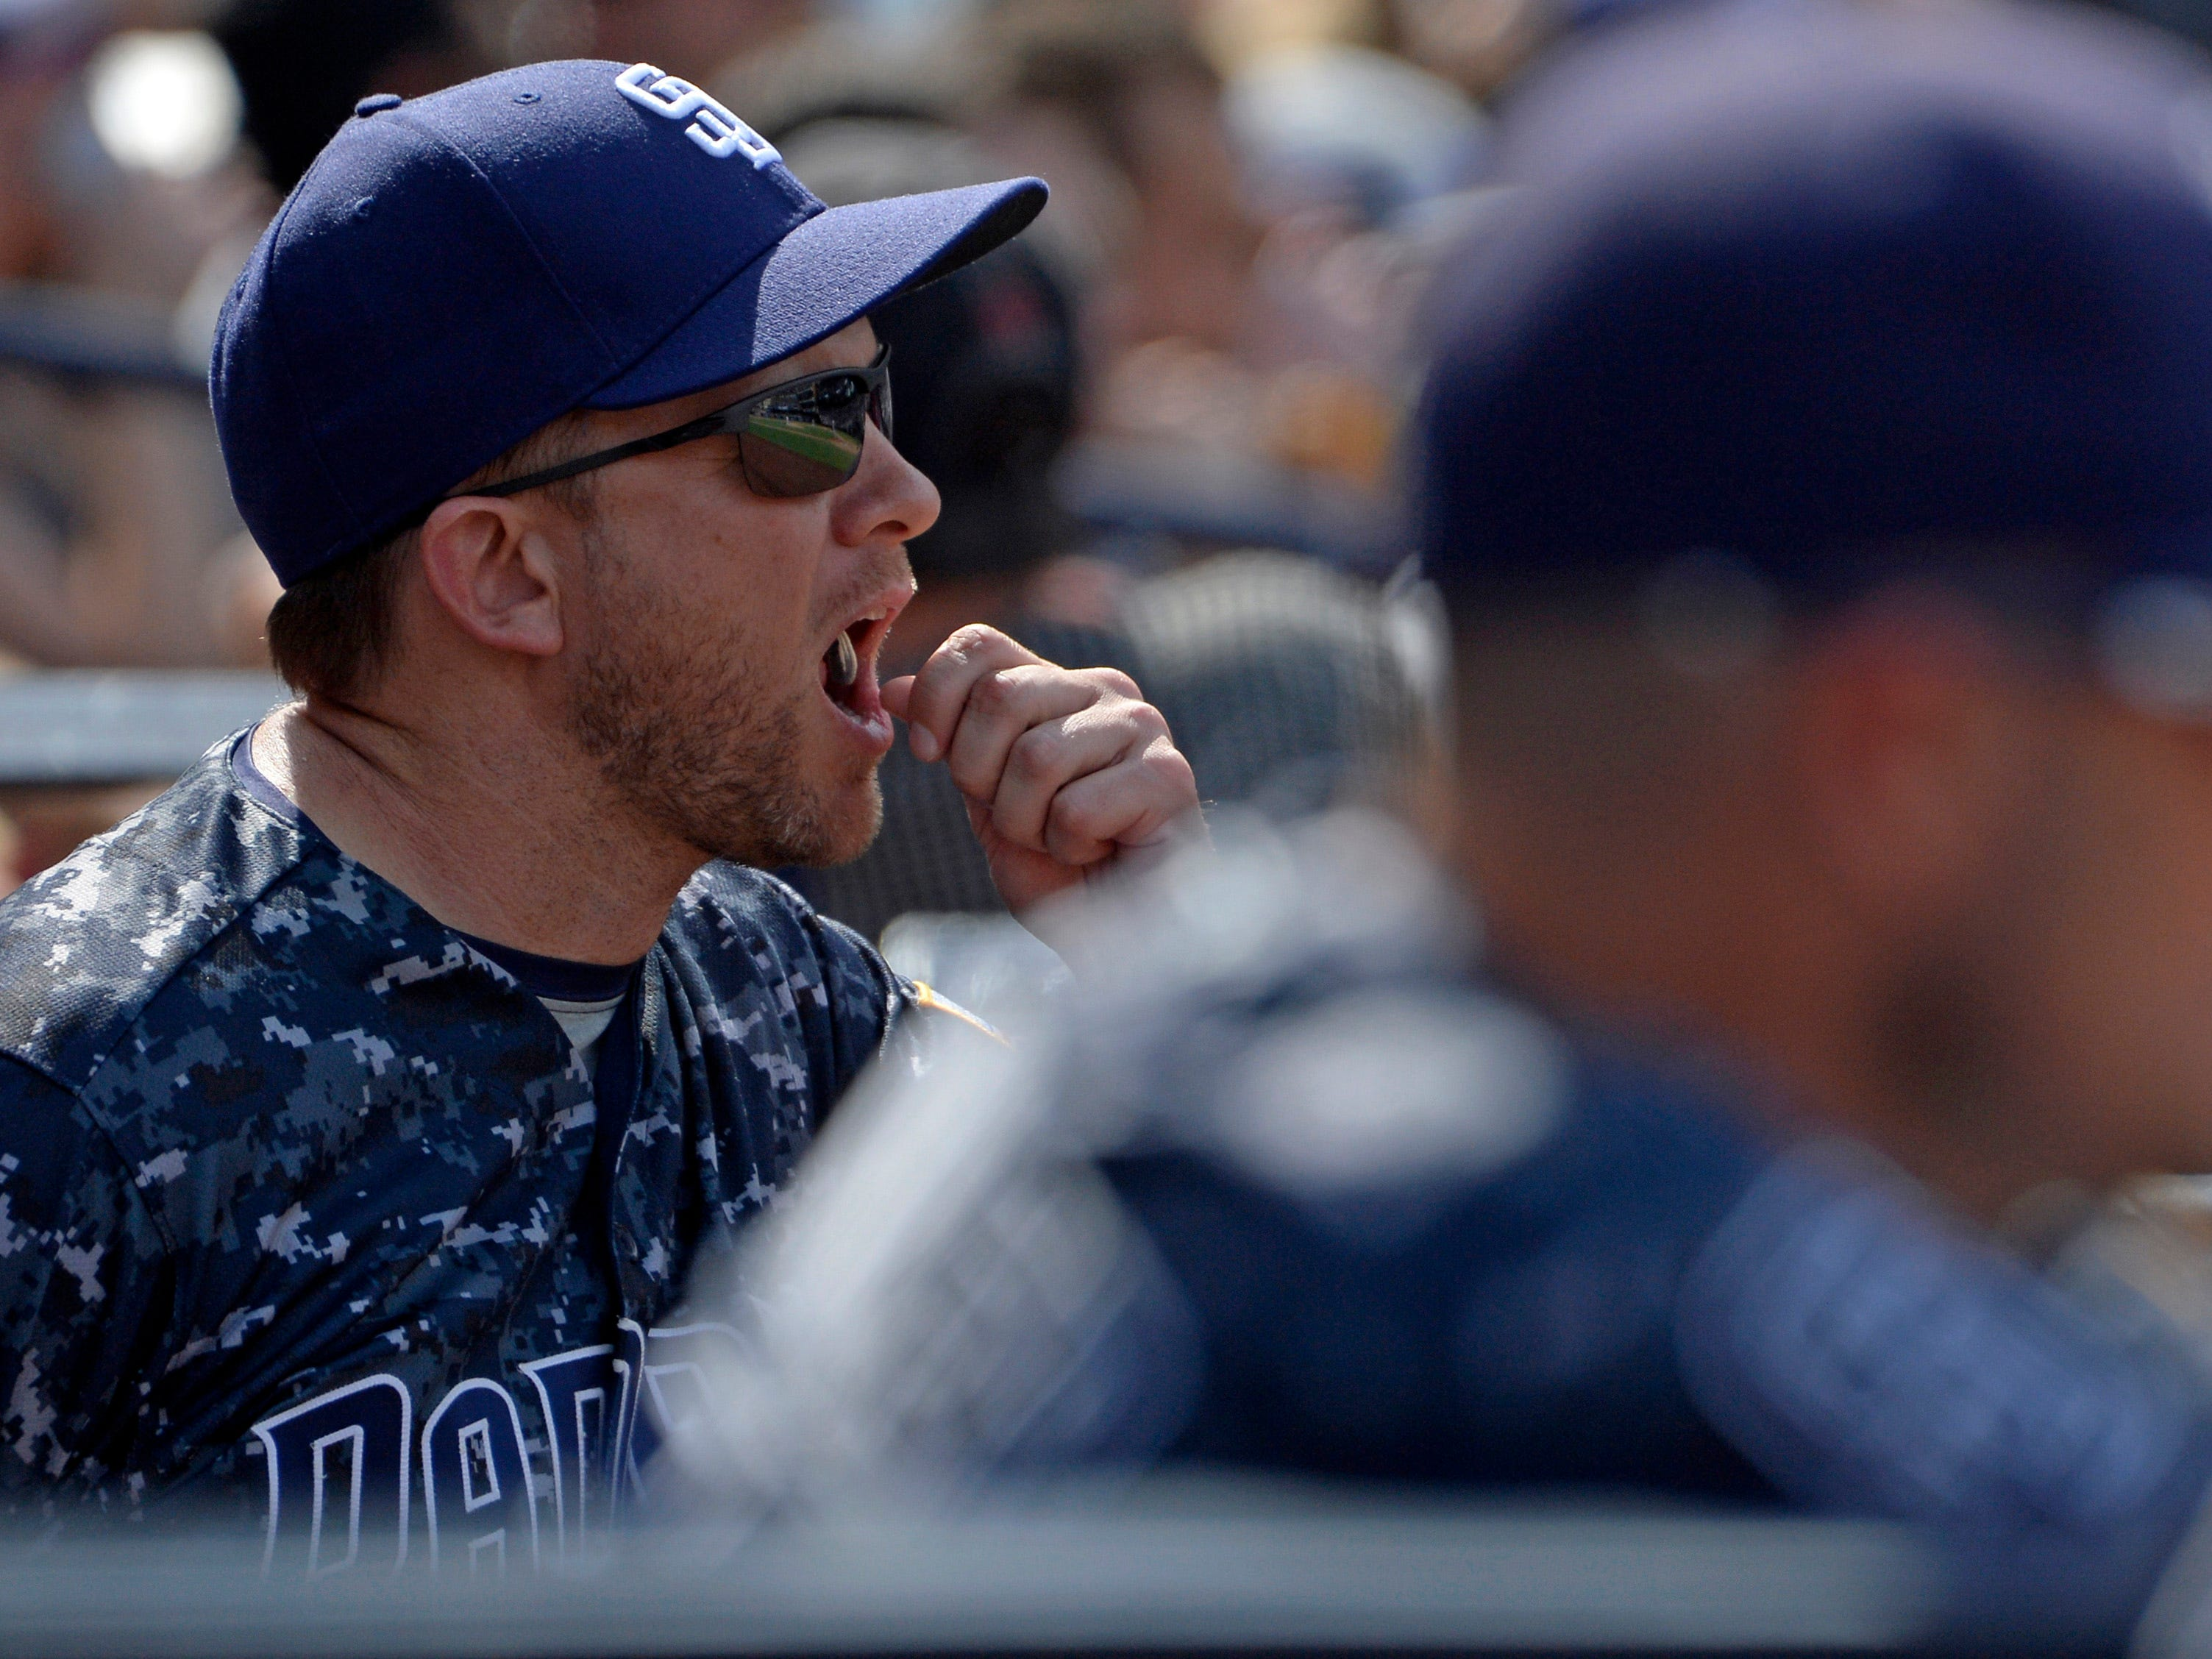 Sep 30, 2018; San Diego, CA, USA; San Diego Padres manager Andy Green (14) tosses sunflower seeds into his mouth in the sixth inning against the Arizona Diamondbacks at Petco Park. Mandatory Credit: Jake Roth-USA TODAY Sports